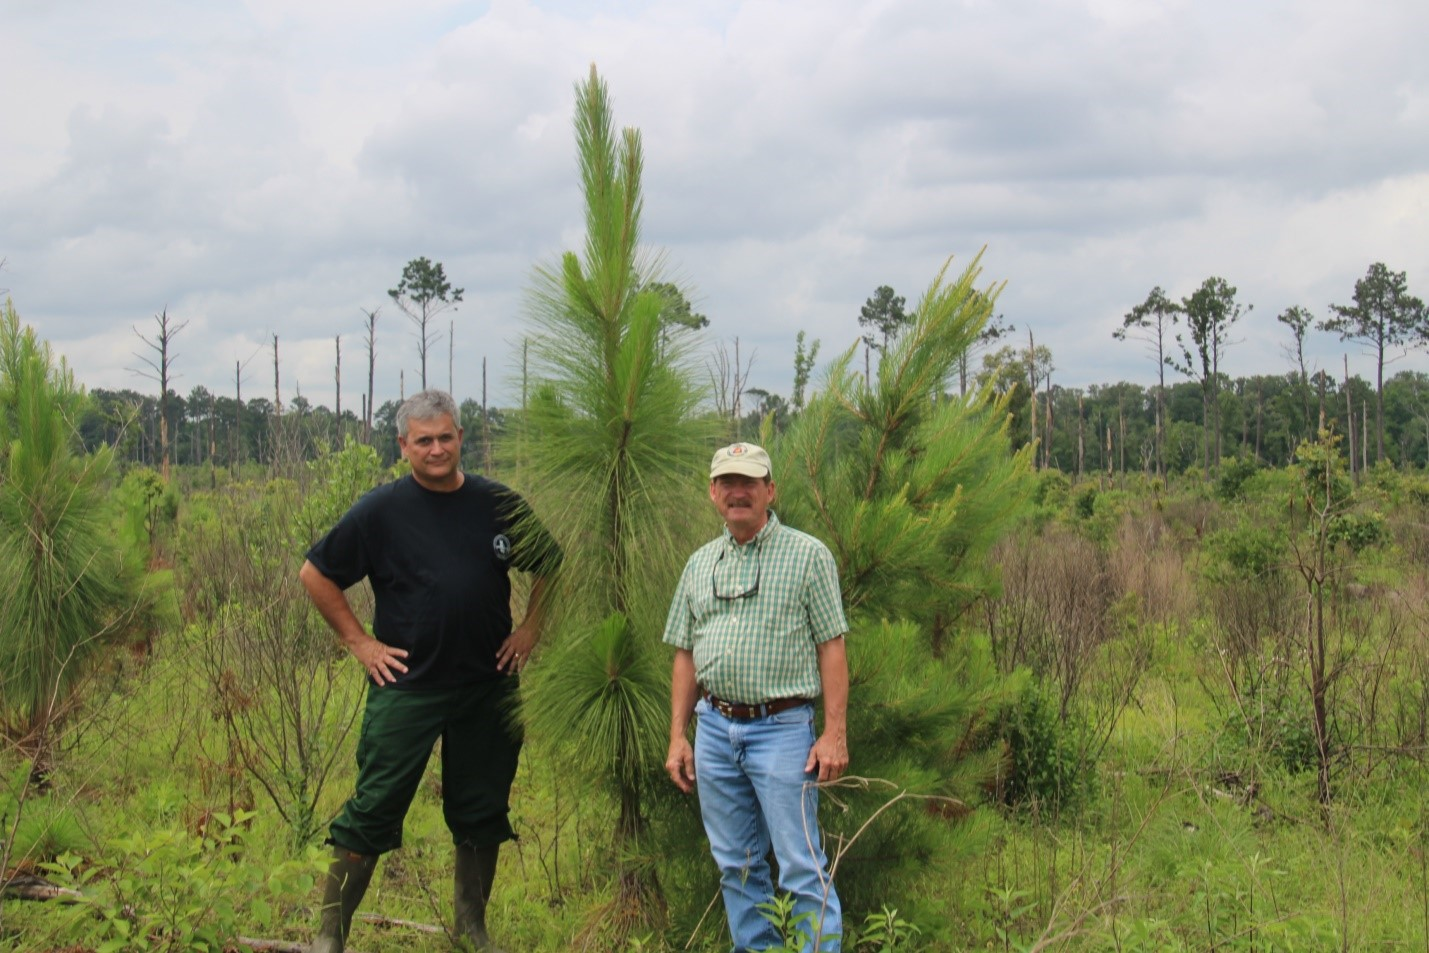 Replanted Longleaf in National Forest, Kerry Hogg, USFS, and Kent Evans, USFS retired